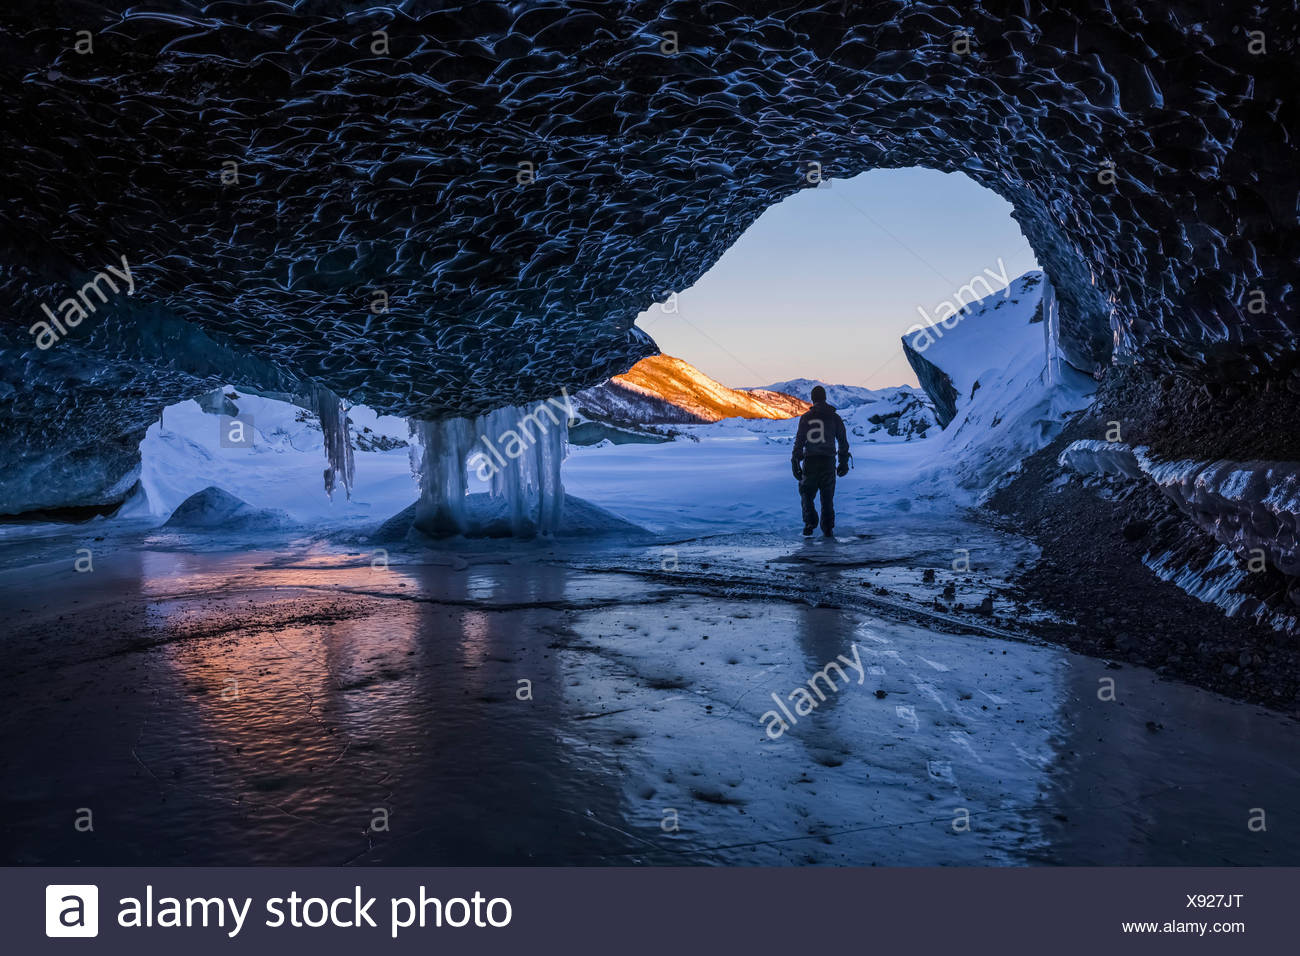 A man walks out the entrance of an ice tunnel at the terminus of Canwell Glacier in the Alaska Range in mid-winter; Alaska, United States of America - Stock Image